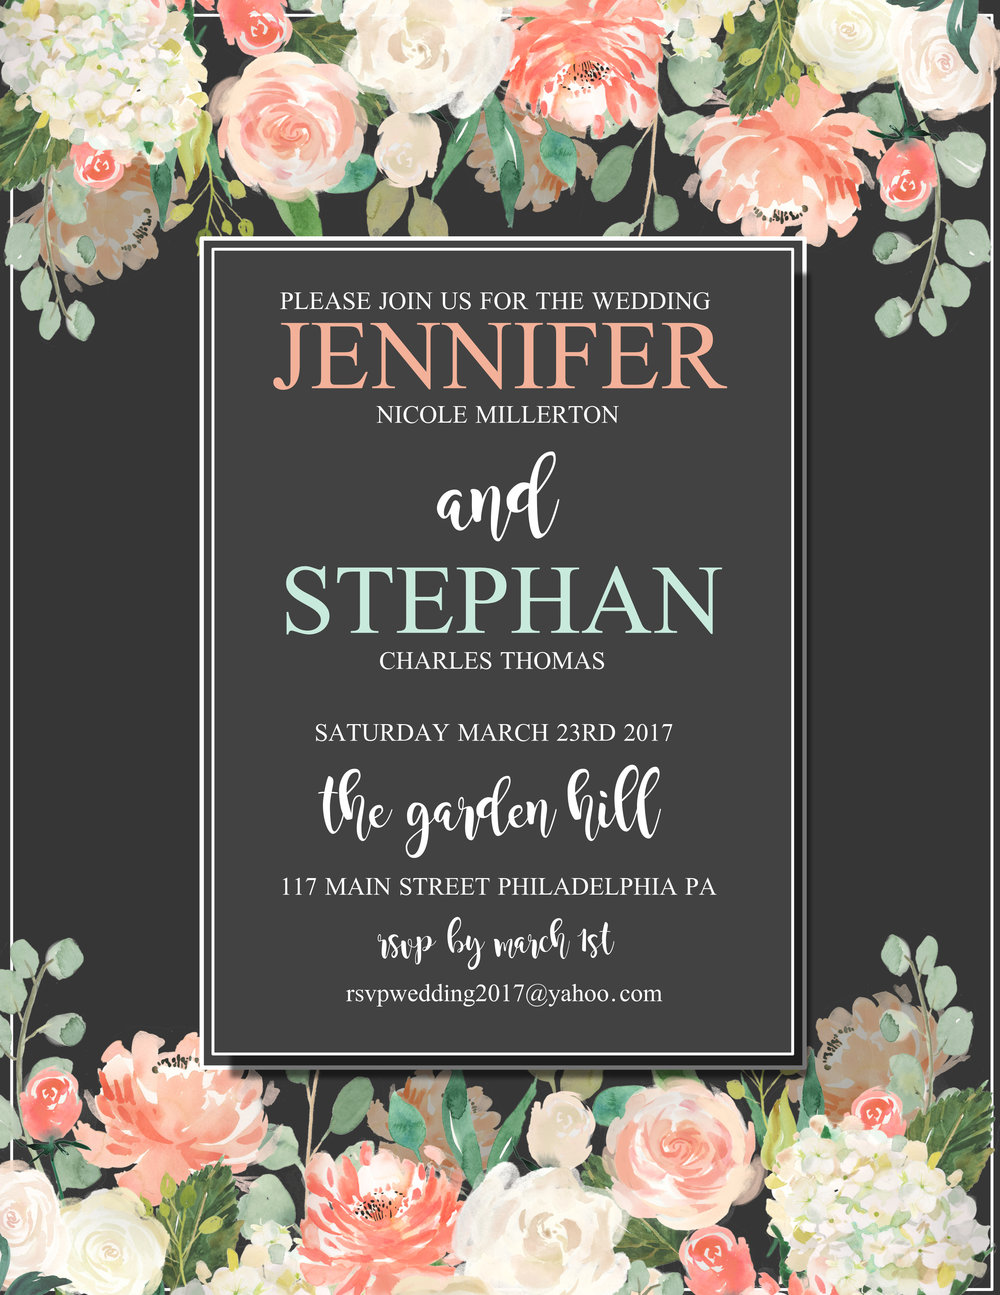 Black save the date invitation template